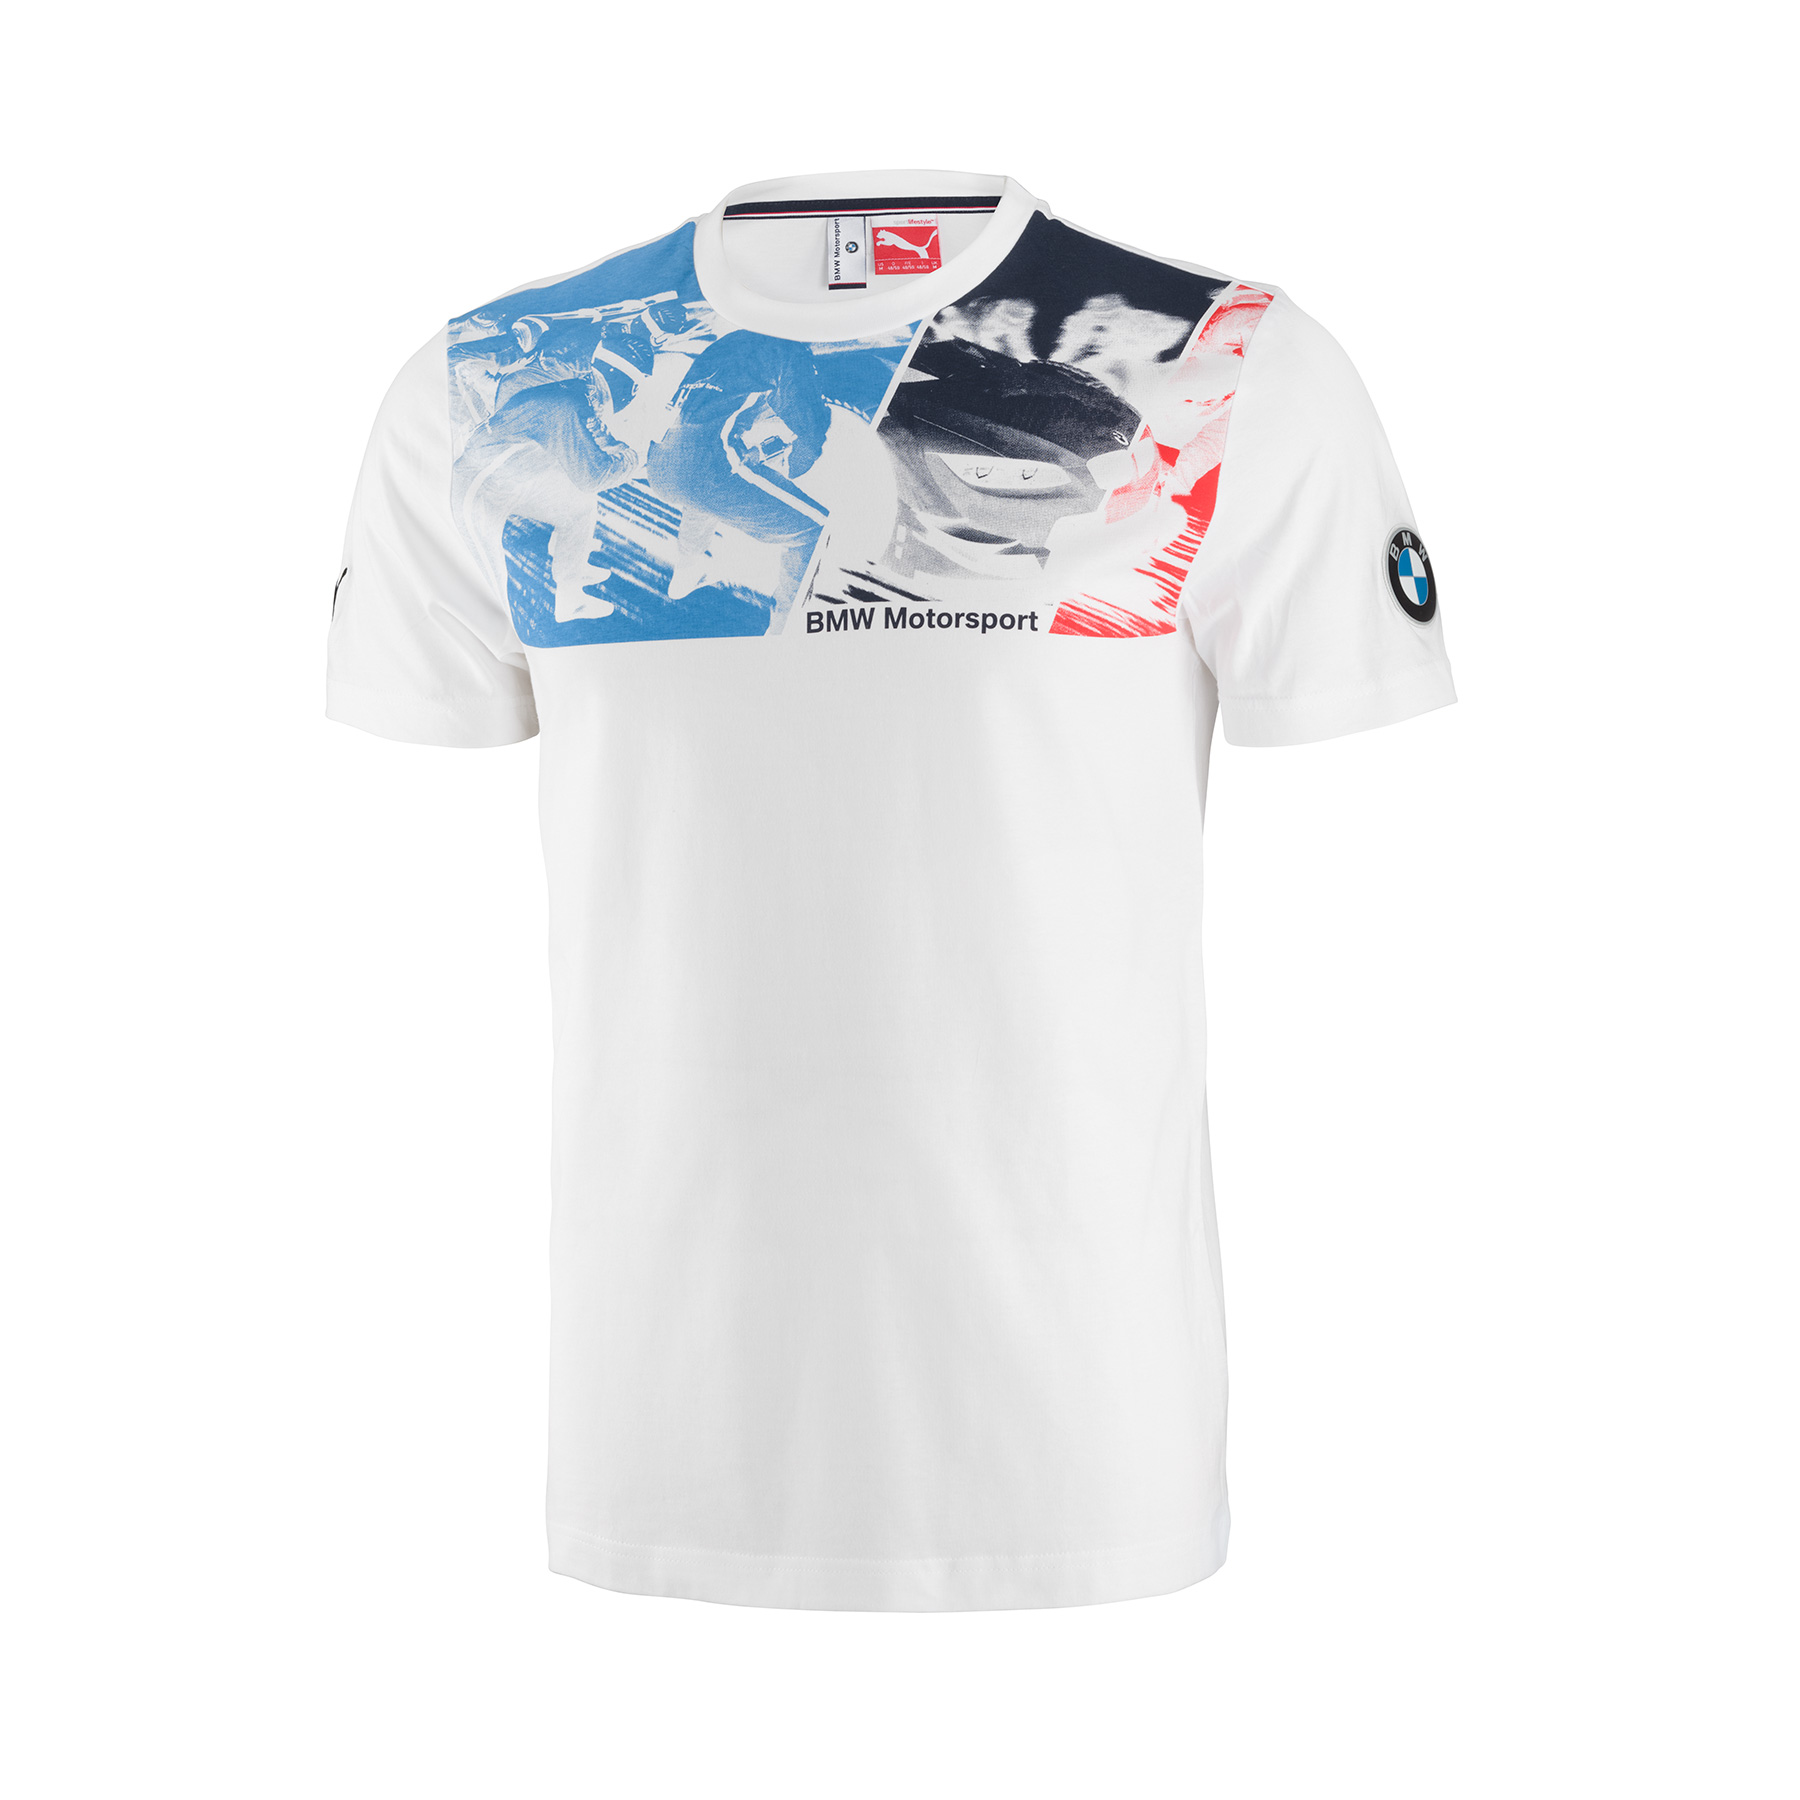 18b8530abe1 Sentinel NEW! PUMA BMW MOTORSPORT M3 M5 M SPORT GRAPHIC T-SHIRT WHITE ALL  SIZES